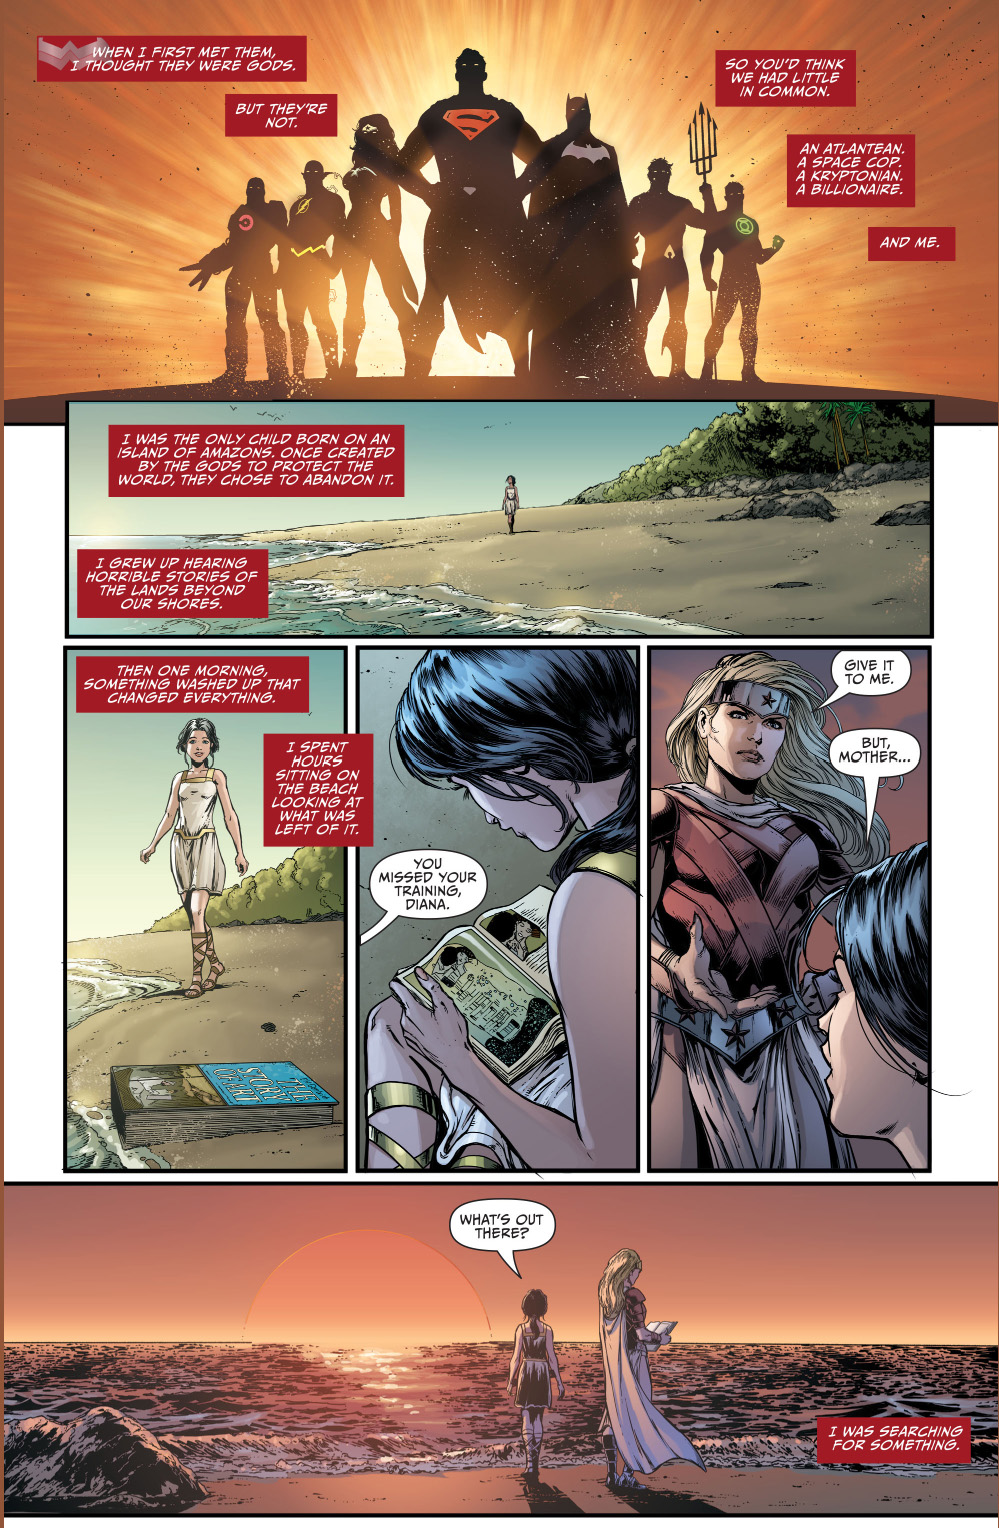 wonder woman's thoughts on the justice league